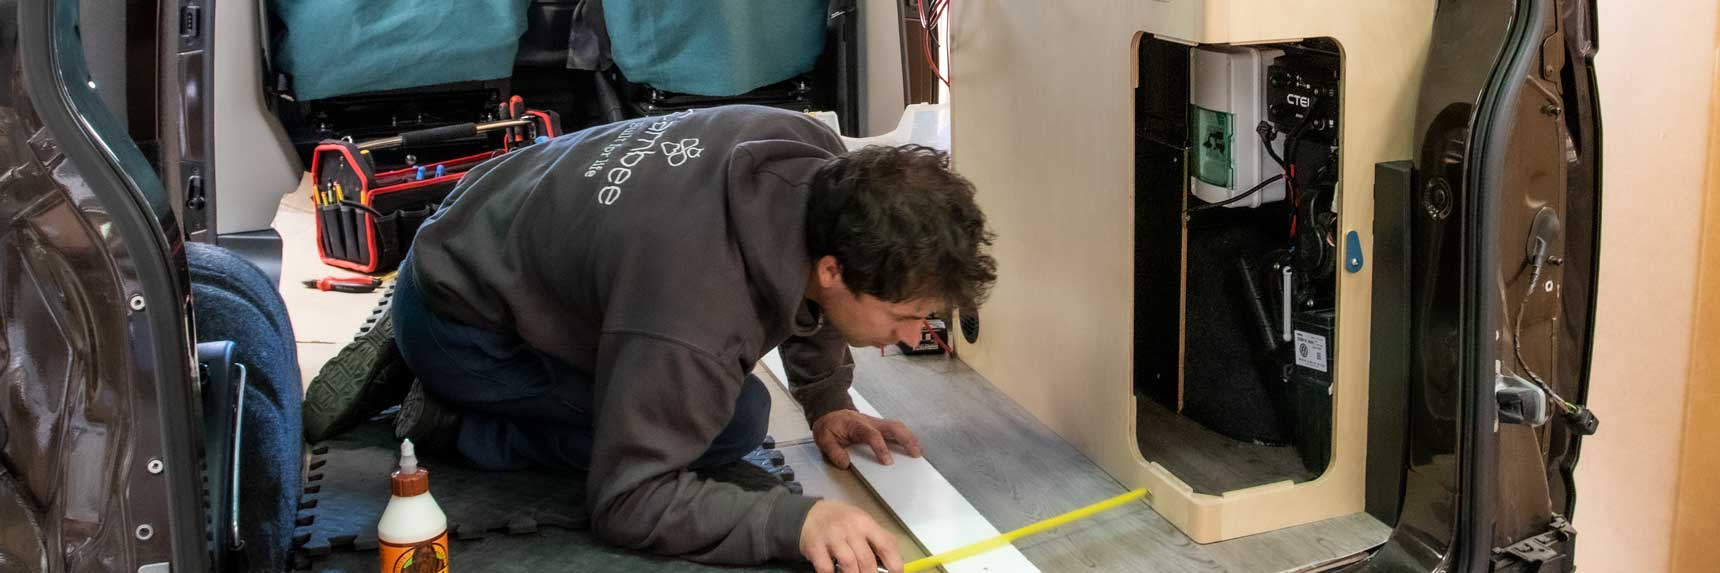 Cambee campervan fitter at work measuring for bespoke interior